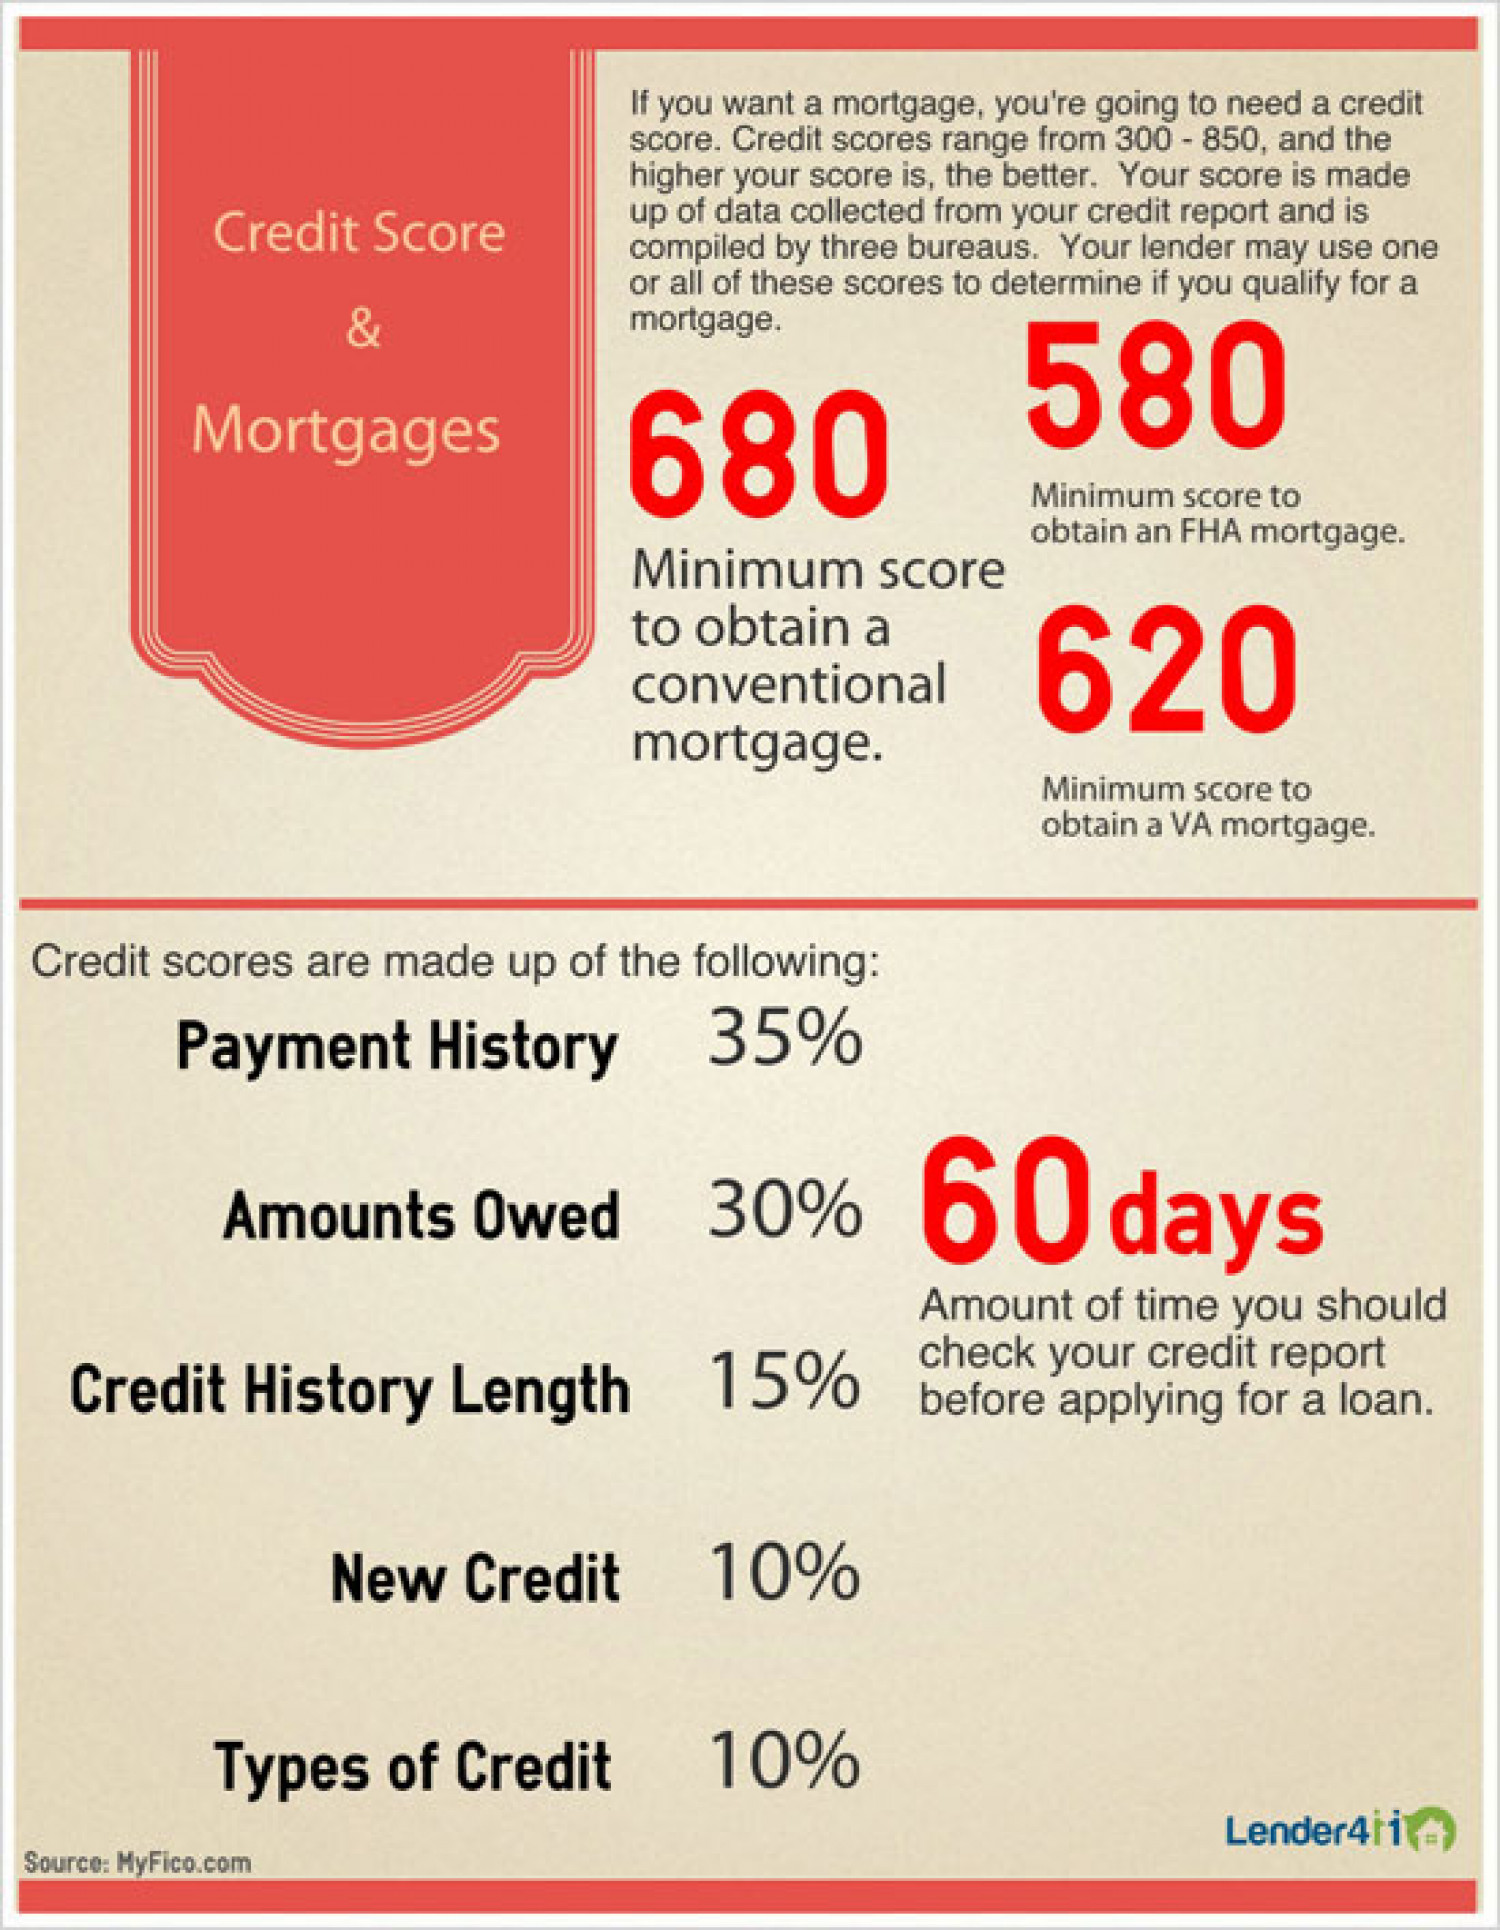 Credit Score | Mortgages Infographic